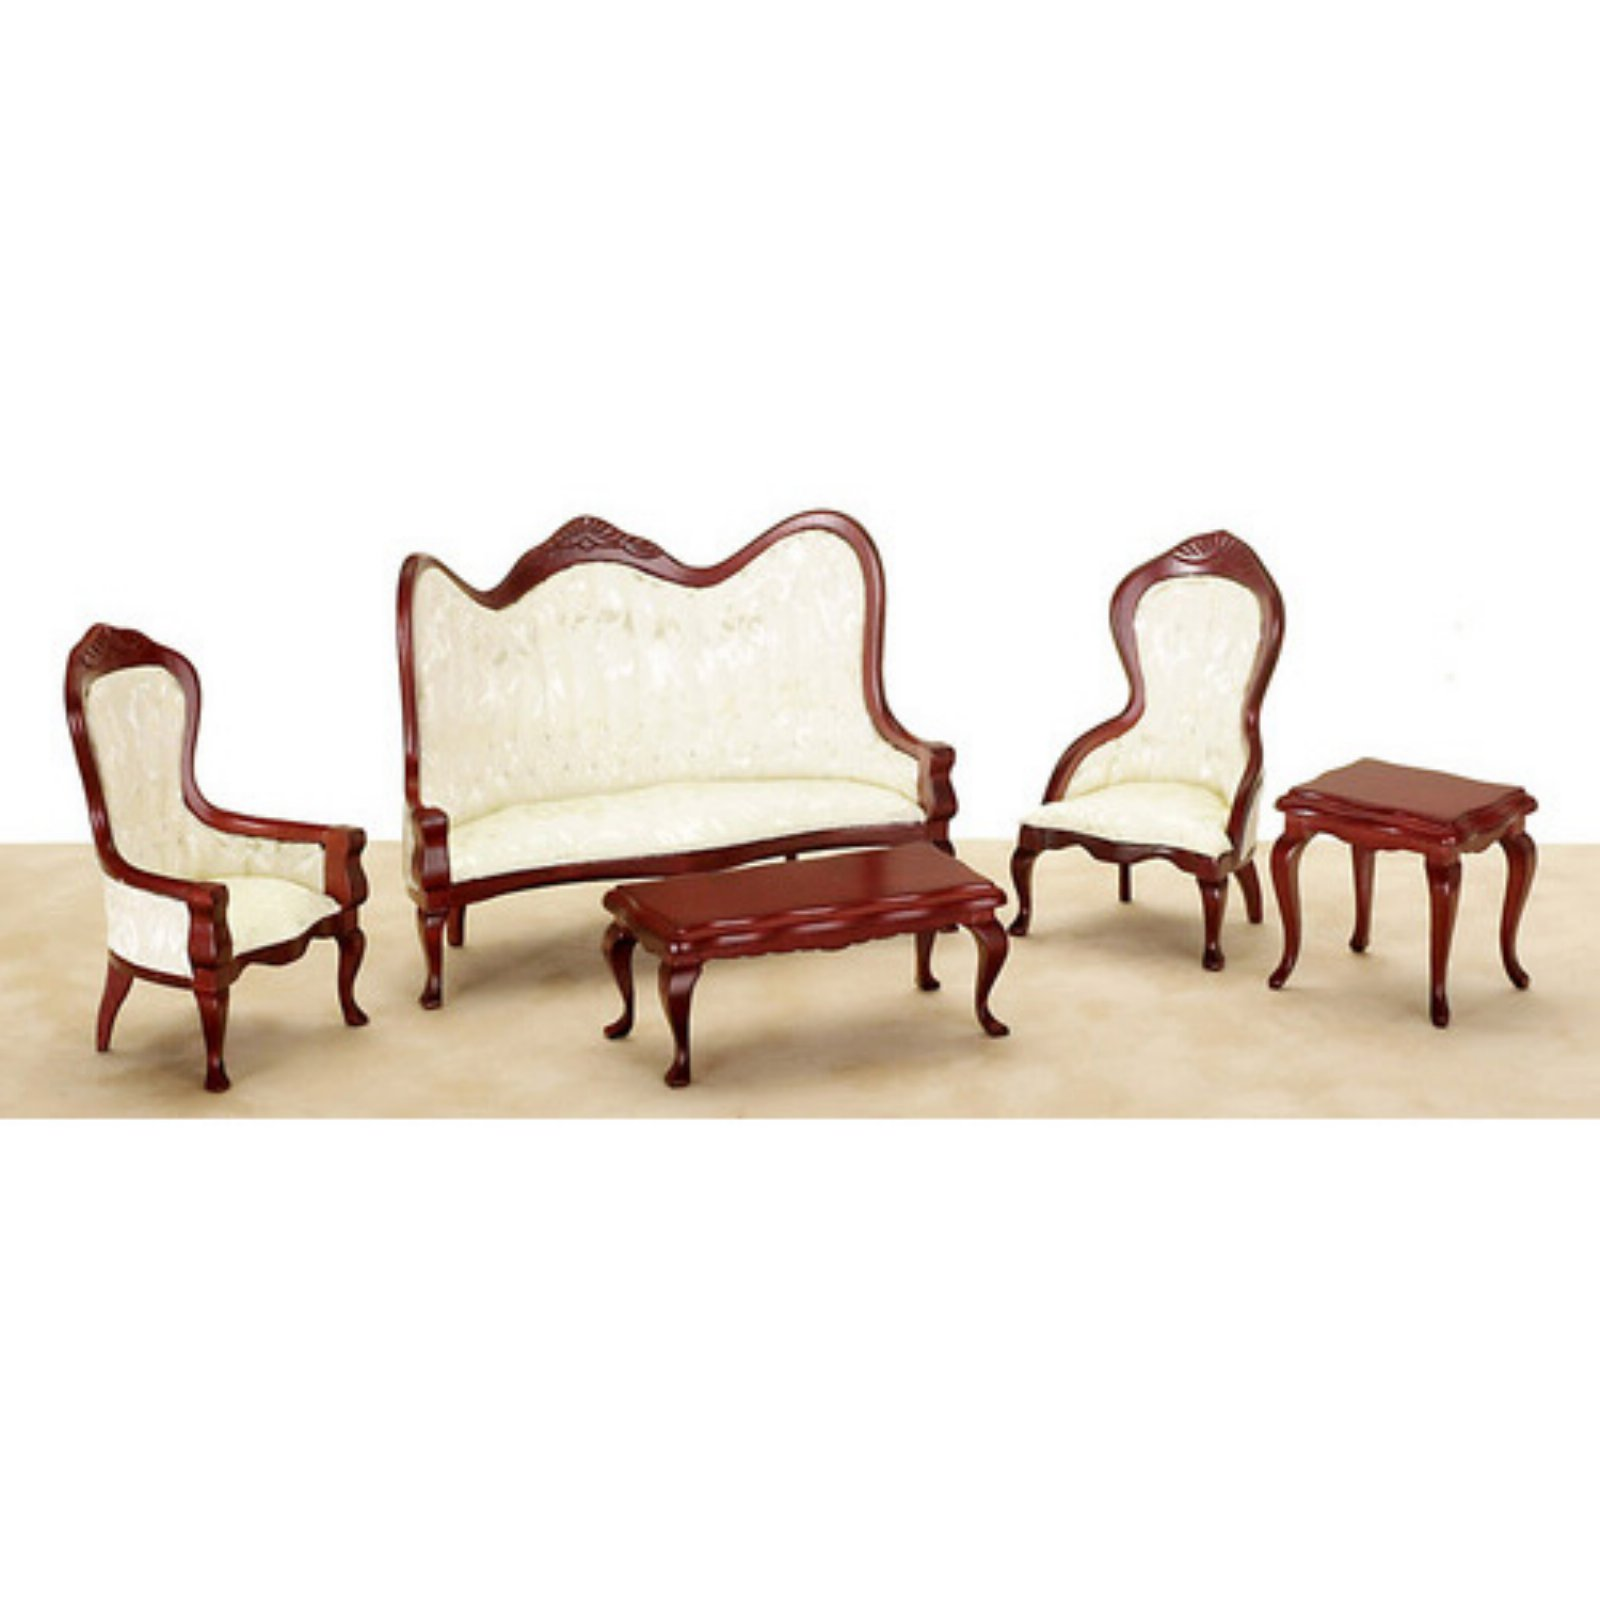 Town Square Miniatures Mahogany and White Victorian Living Room Set